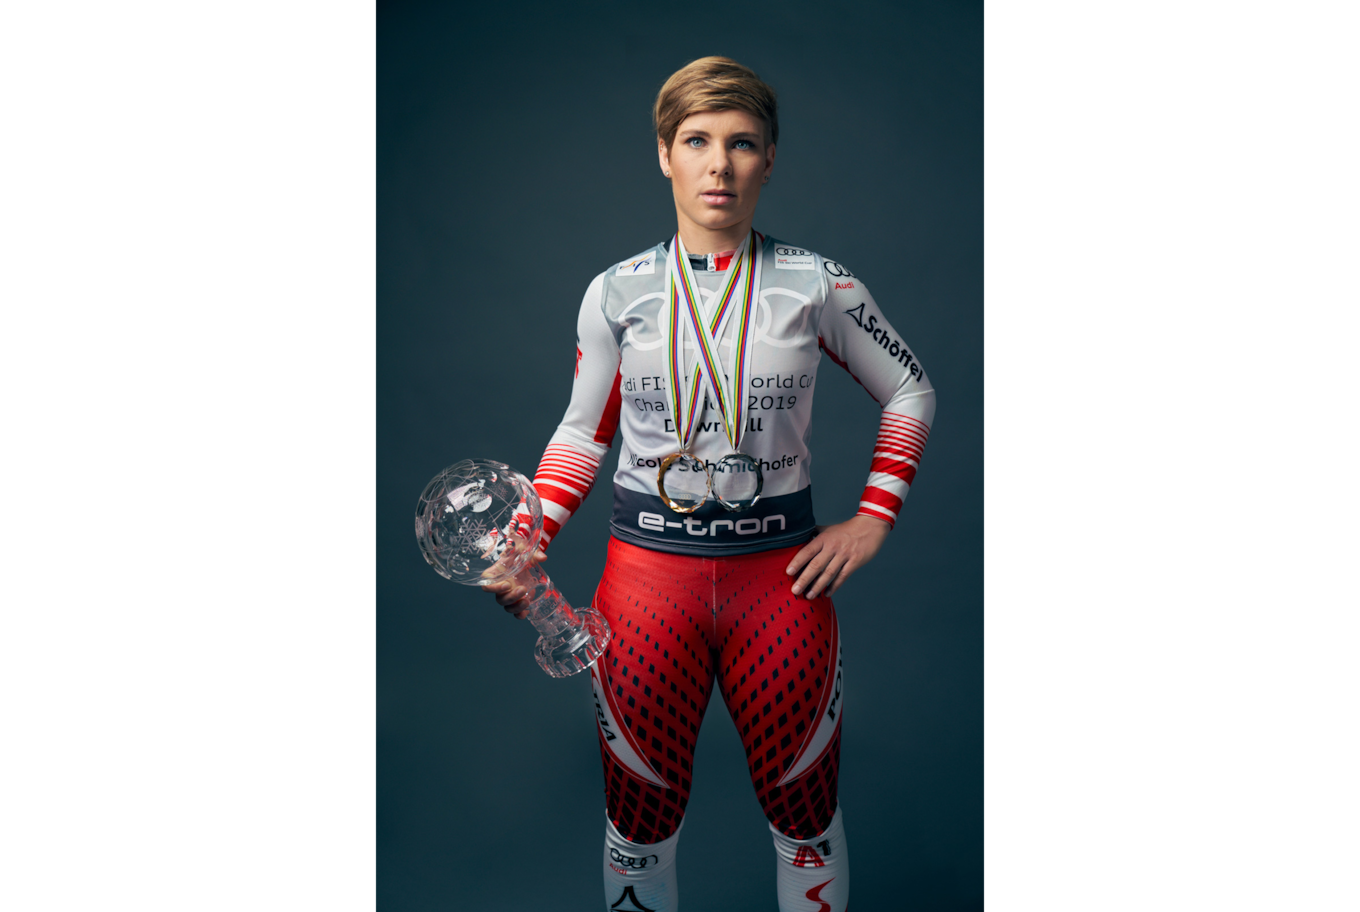 daniel gossmann sony alpha 7RM3 olympic athlete posing formally with trophy